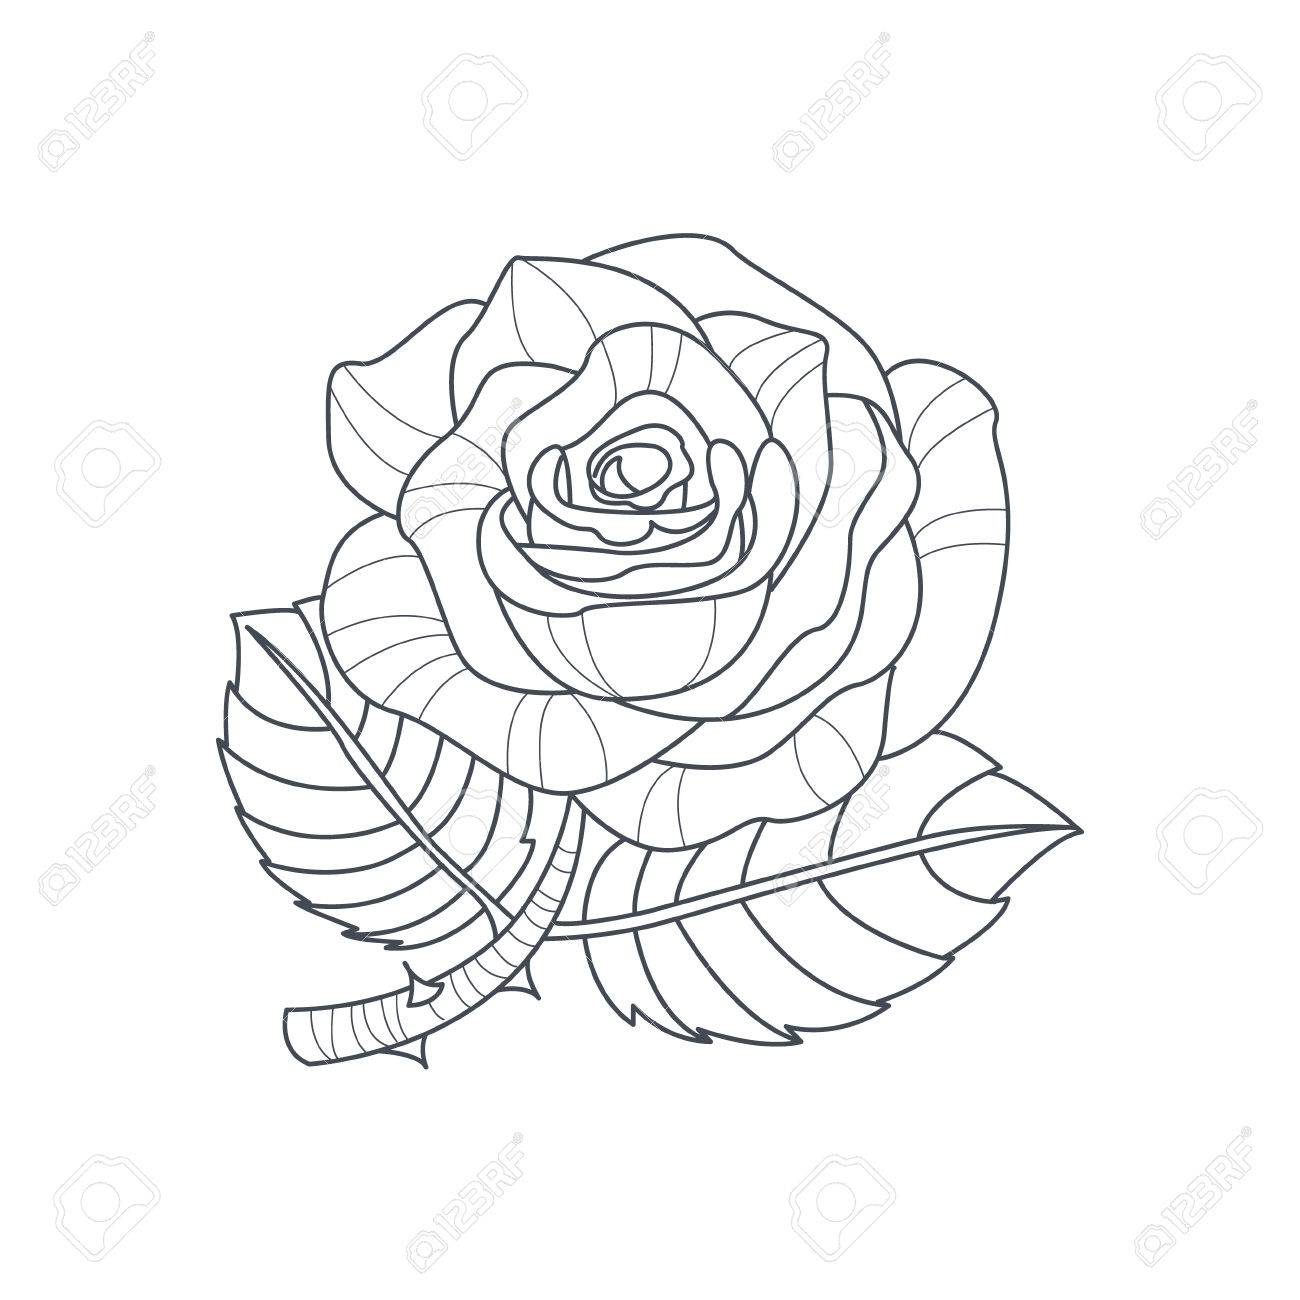 1300x1300 Rose Flower Monochrome Drawing For Coloring Book Hand Drawn Vector